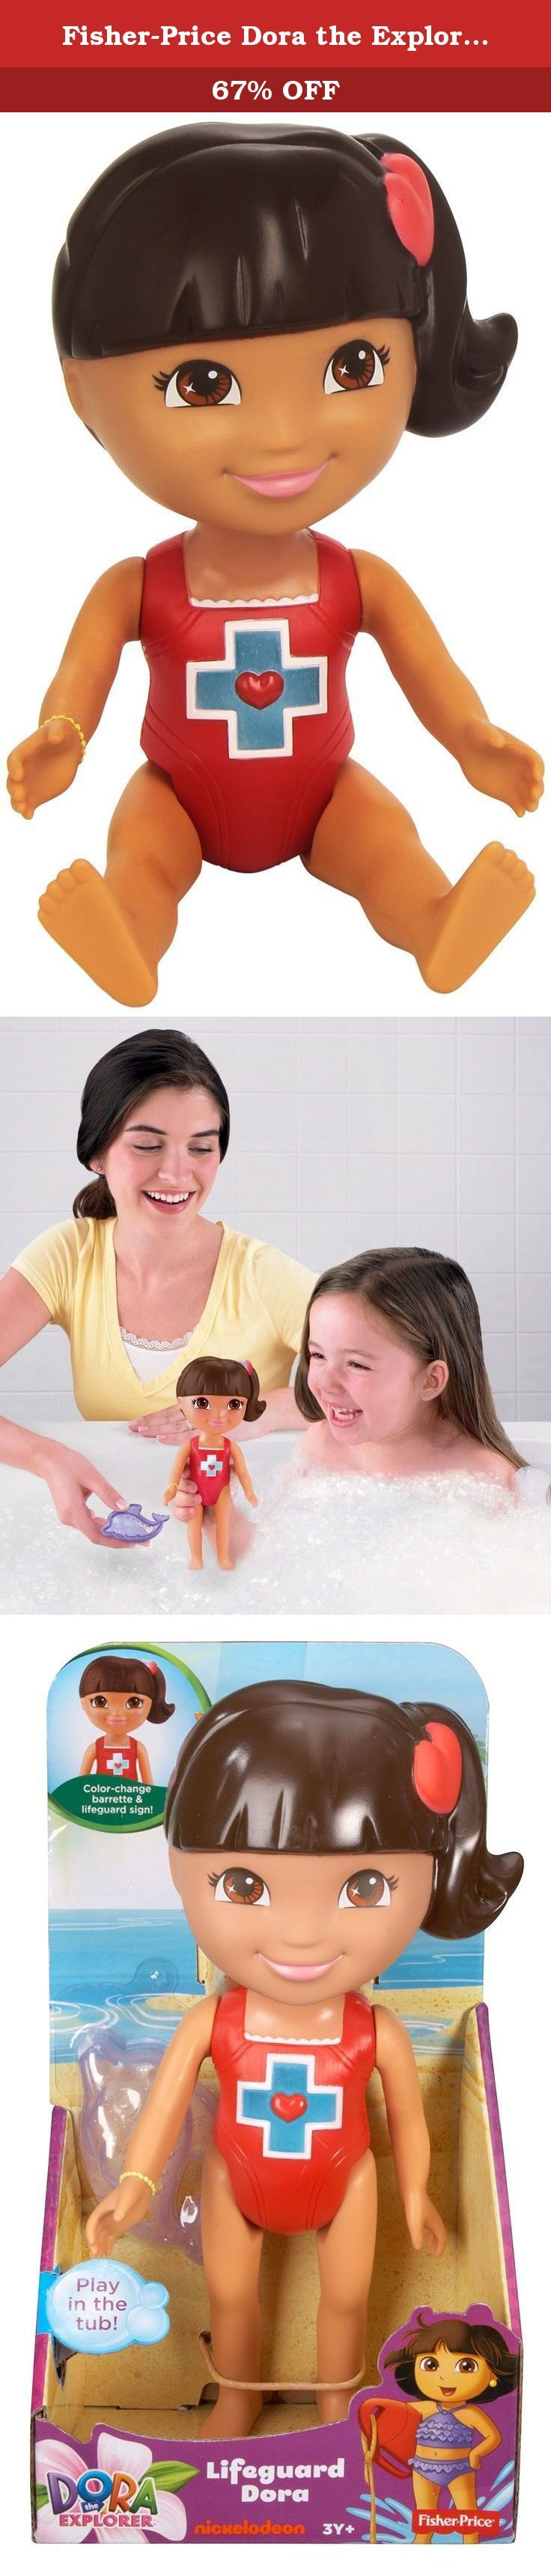 Fisher-Price Dora the Explorer: Bathtime Lifeguard Dora. Join Dora for a magical bathtime adventure! Simply use warm water to change the color of Dora's barrette and the lifeguard sign on her bathing suit! Dora features poseable arms and legs and also comes with a dolphin-shaped water scooper!.